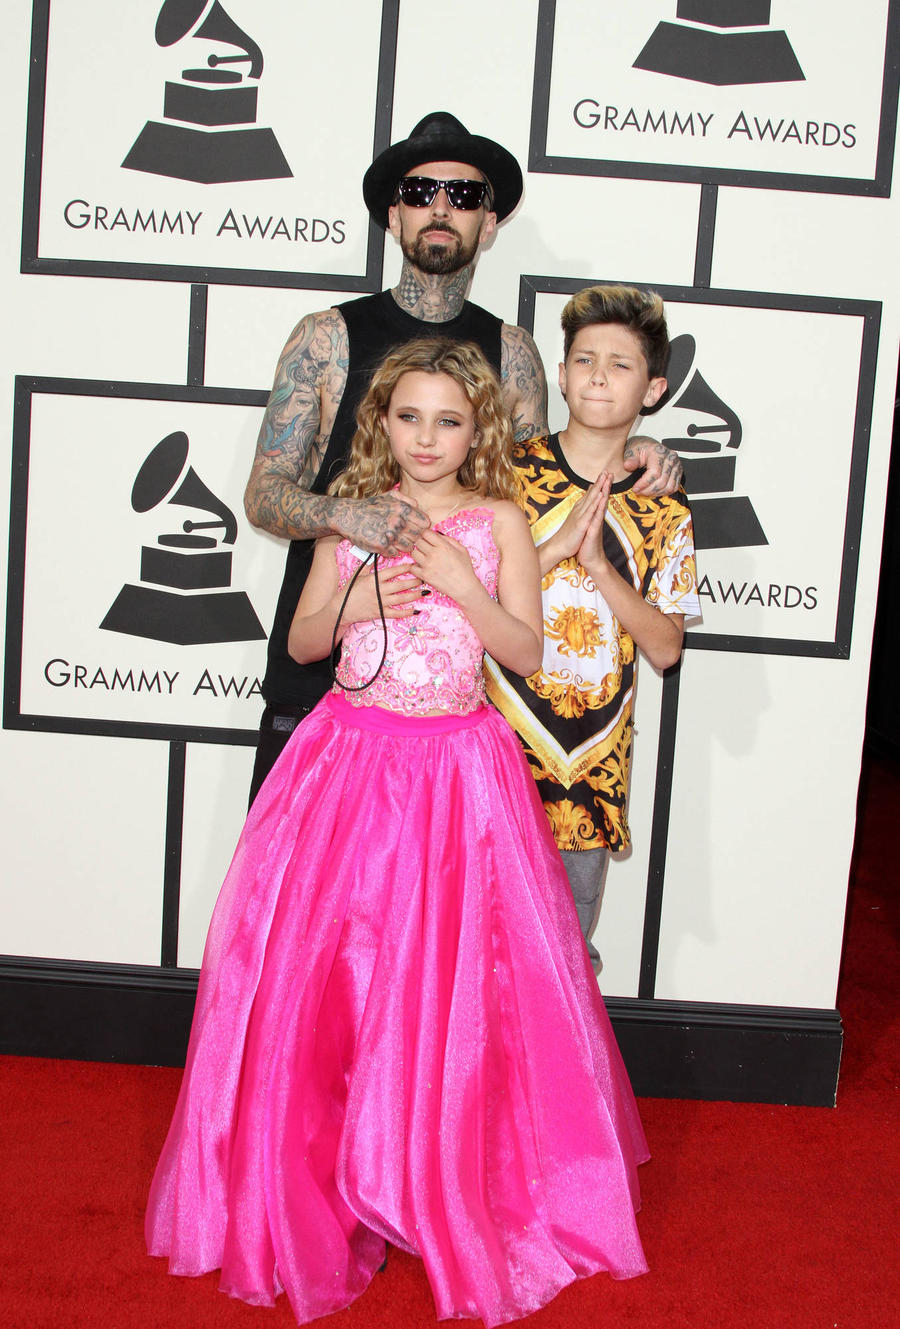 Travis Barker Repairs Relationship With Ex-wife For Their Children